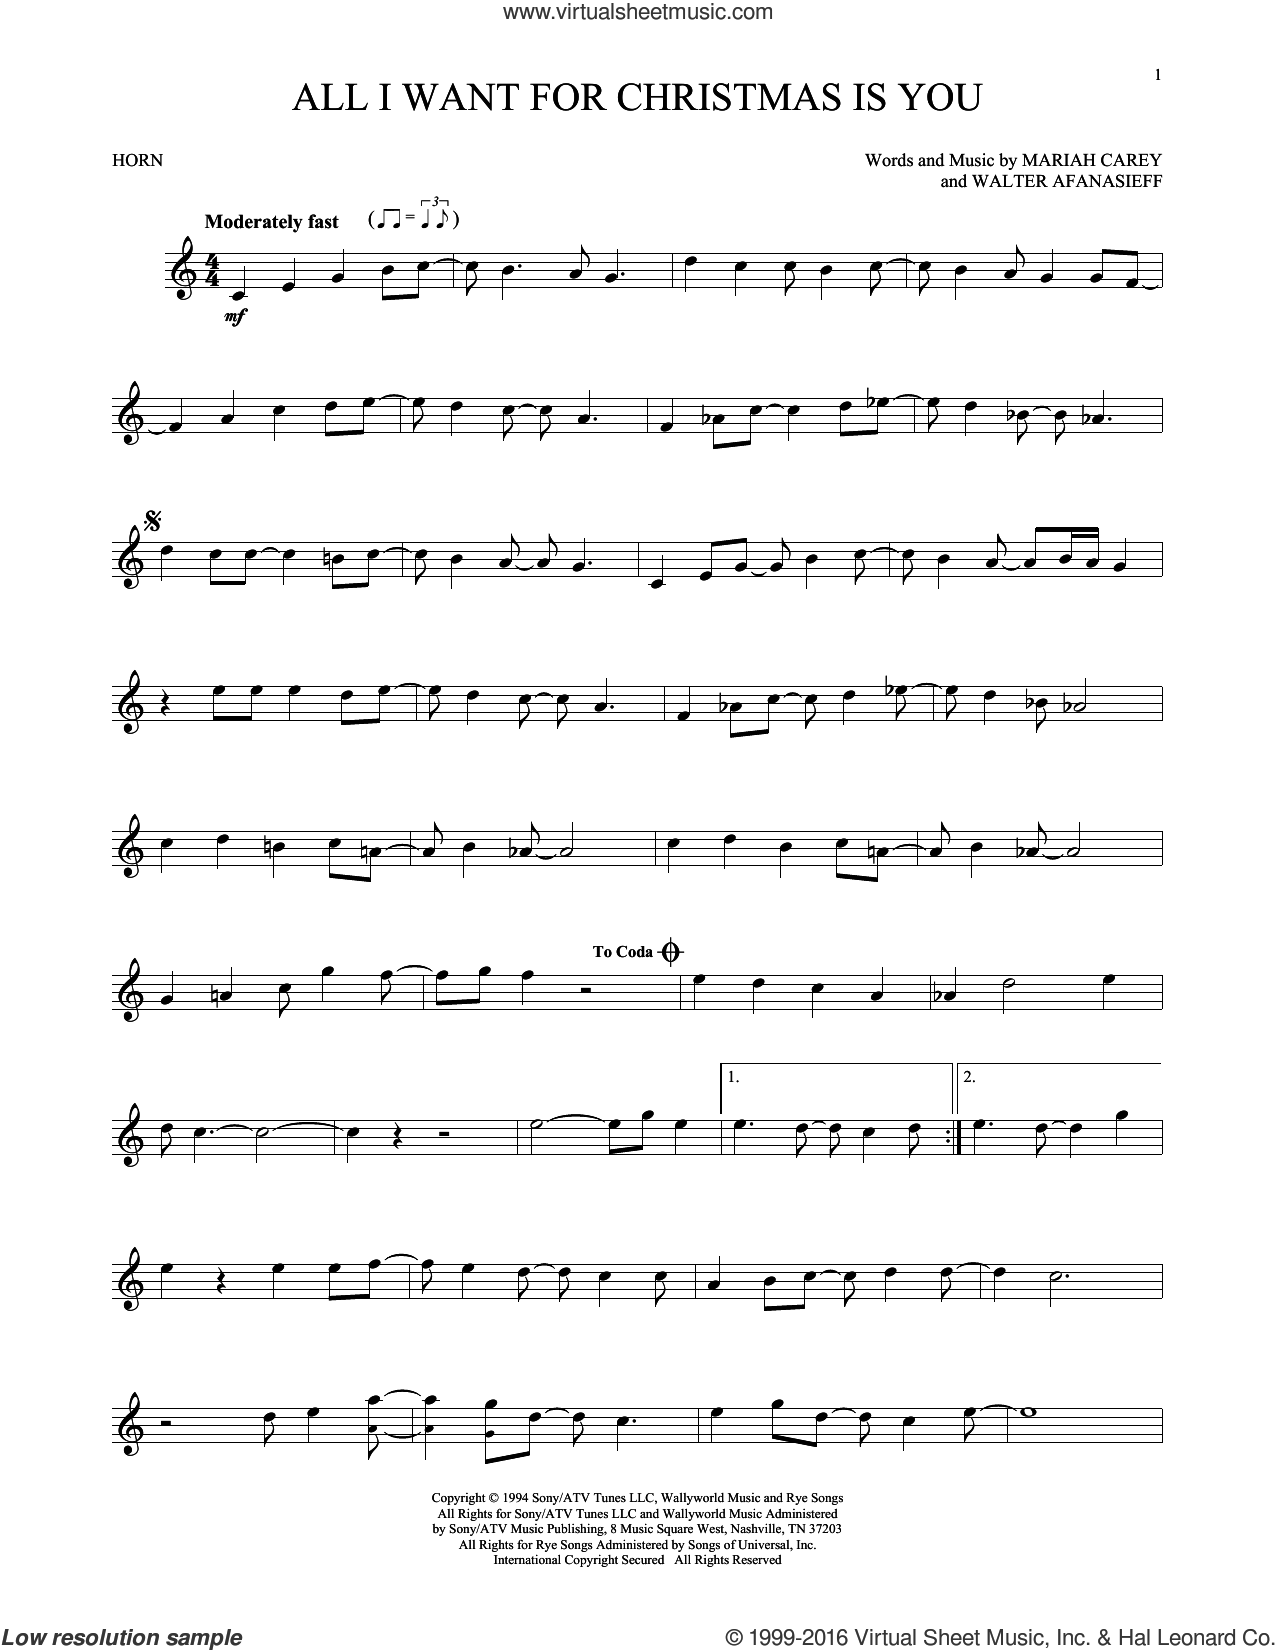 All I Want For Christmas Is You sheet music for horn solo by Walter Afanasieff and Mariah Carey. Score Image Preview.